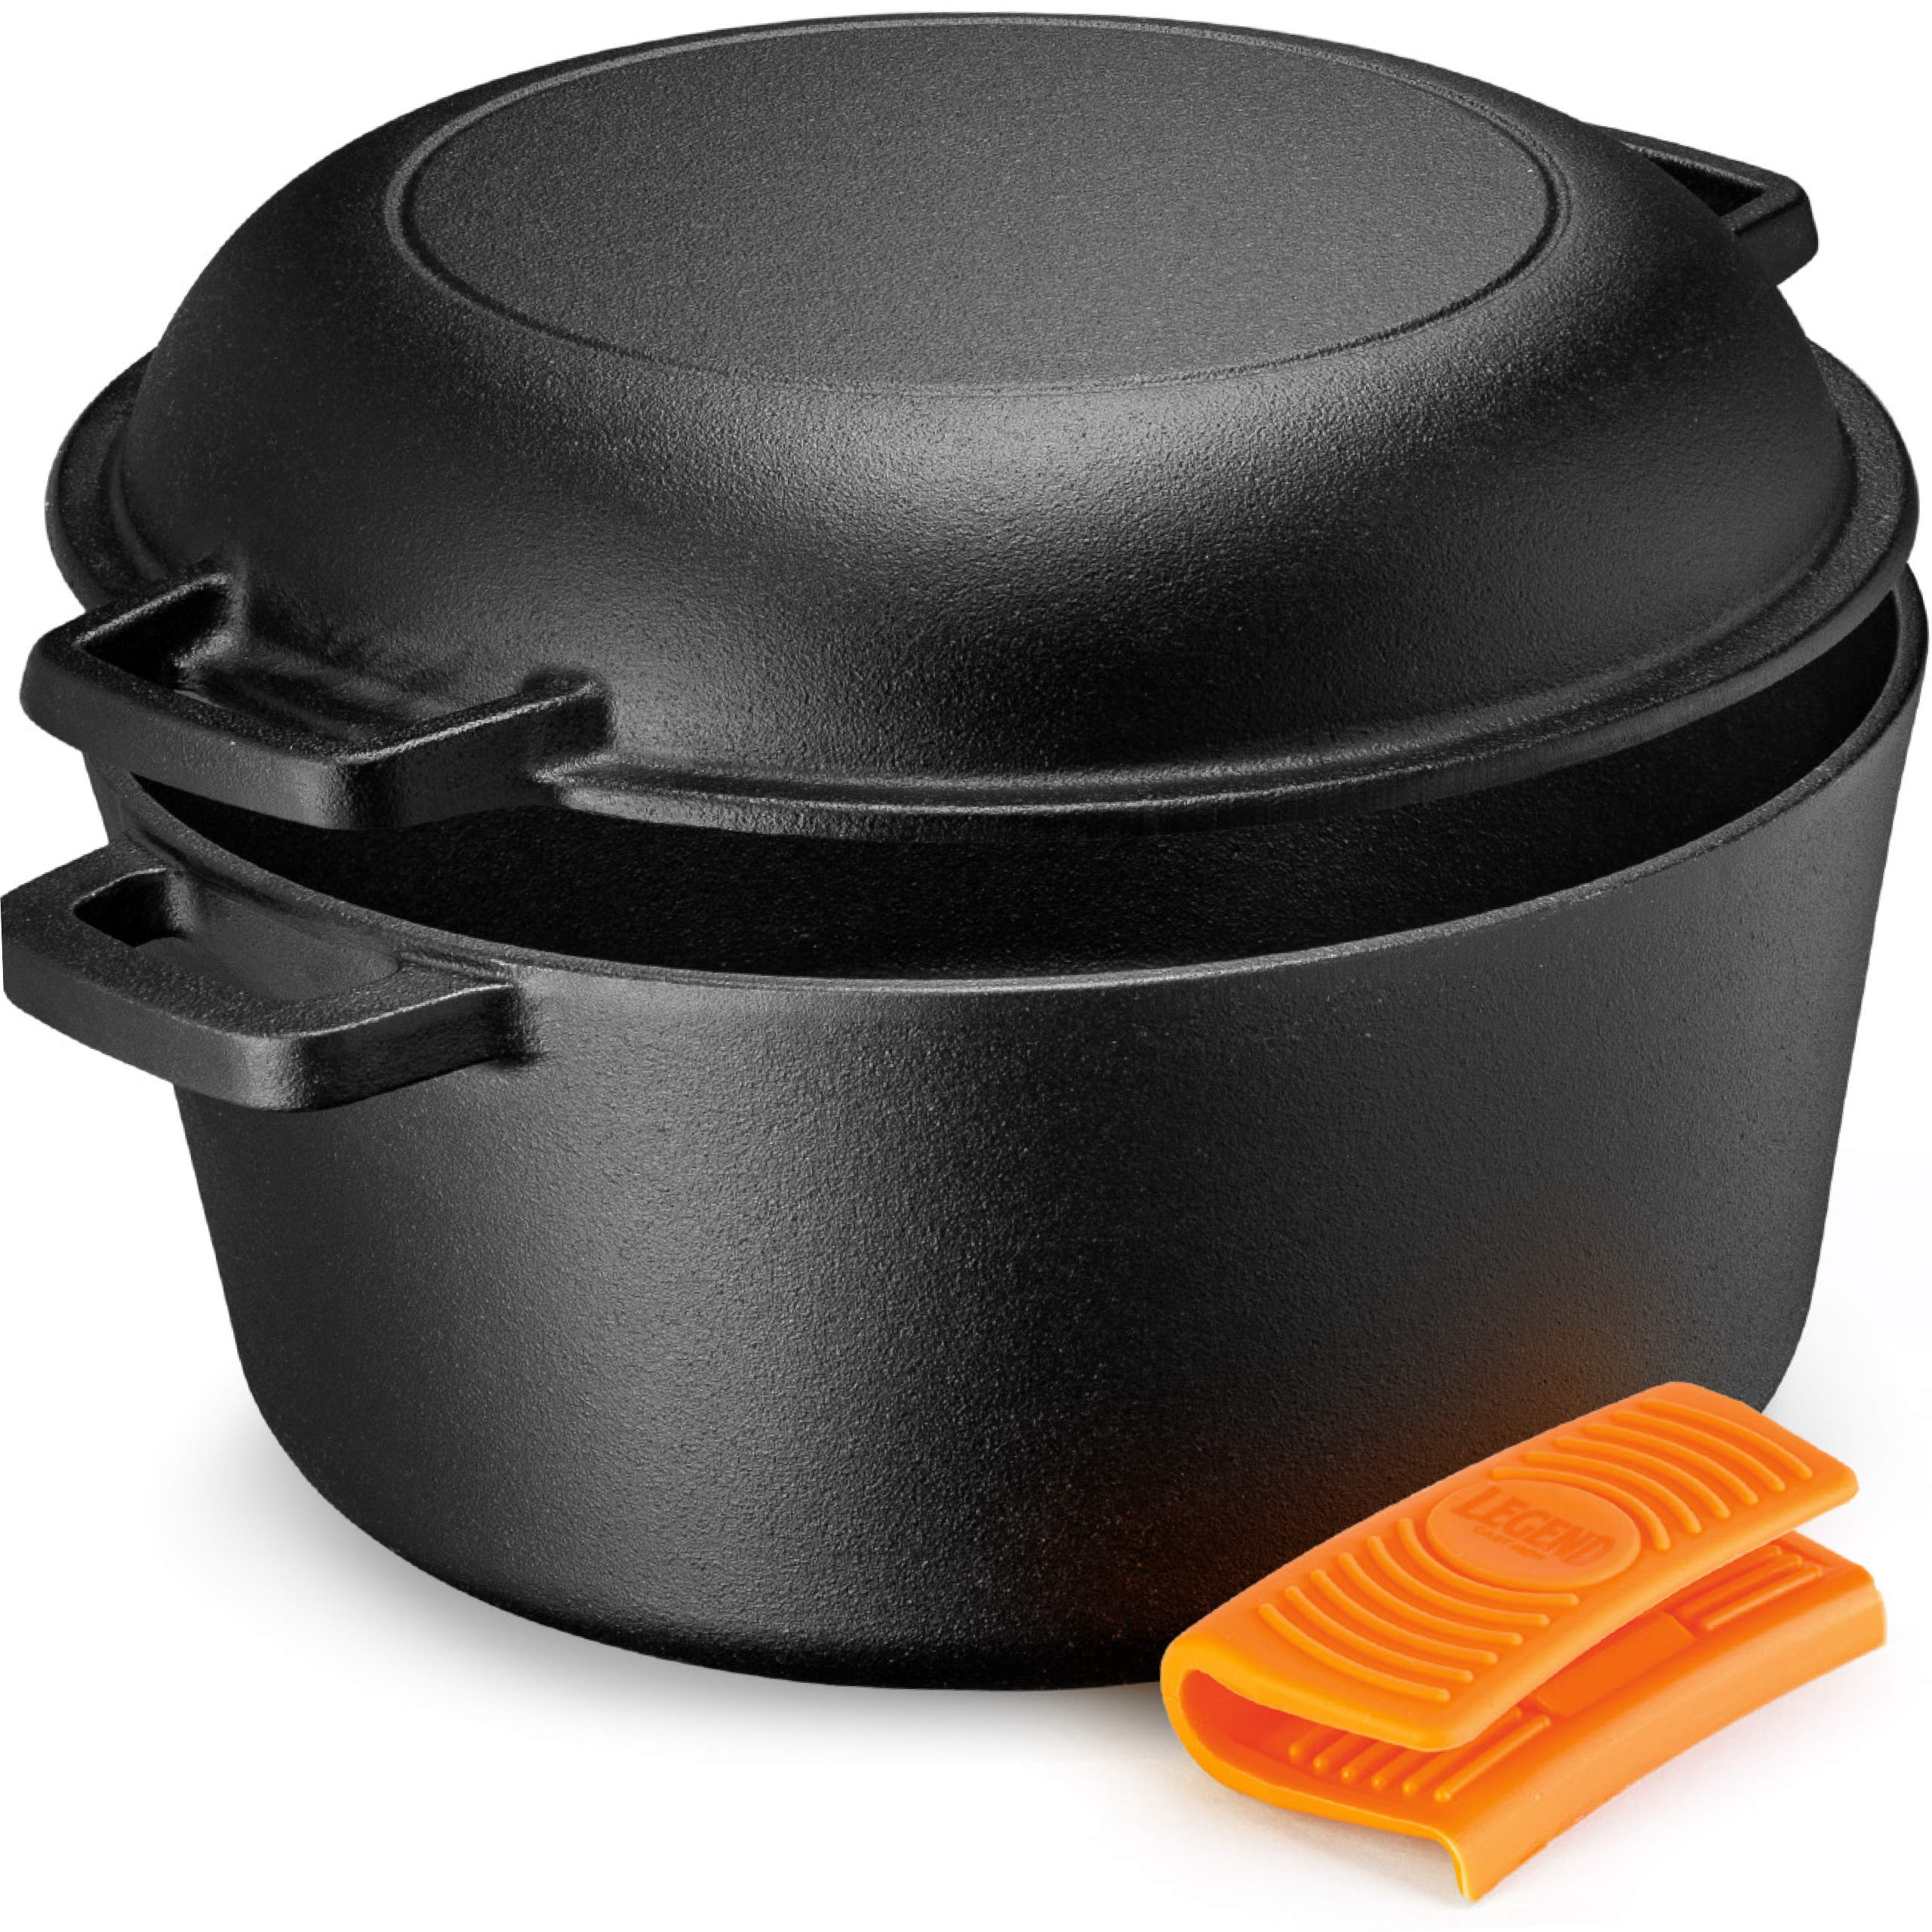 Legend Cast Iron Dutch Oven | 5 Quart Cast Iron Multi Cooker Stock Pot For Frying, Cooking, Baking & Broiling on Induction, Electric, Gas & In Oven | Lightly Pre-Seasoned & Gets Better with Each Use by Legend Cast Iron